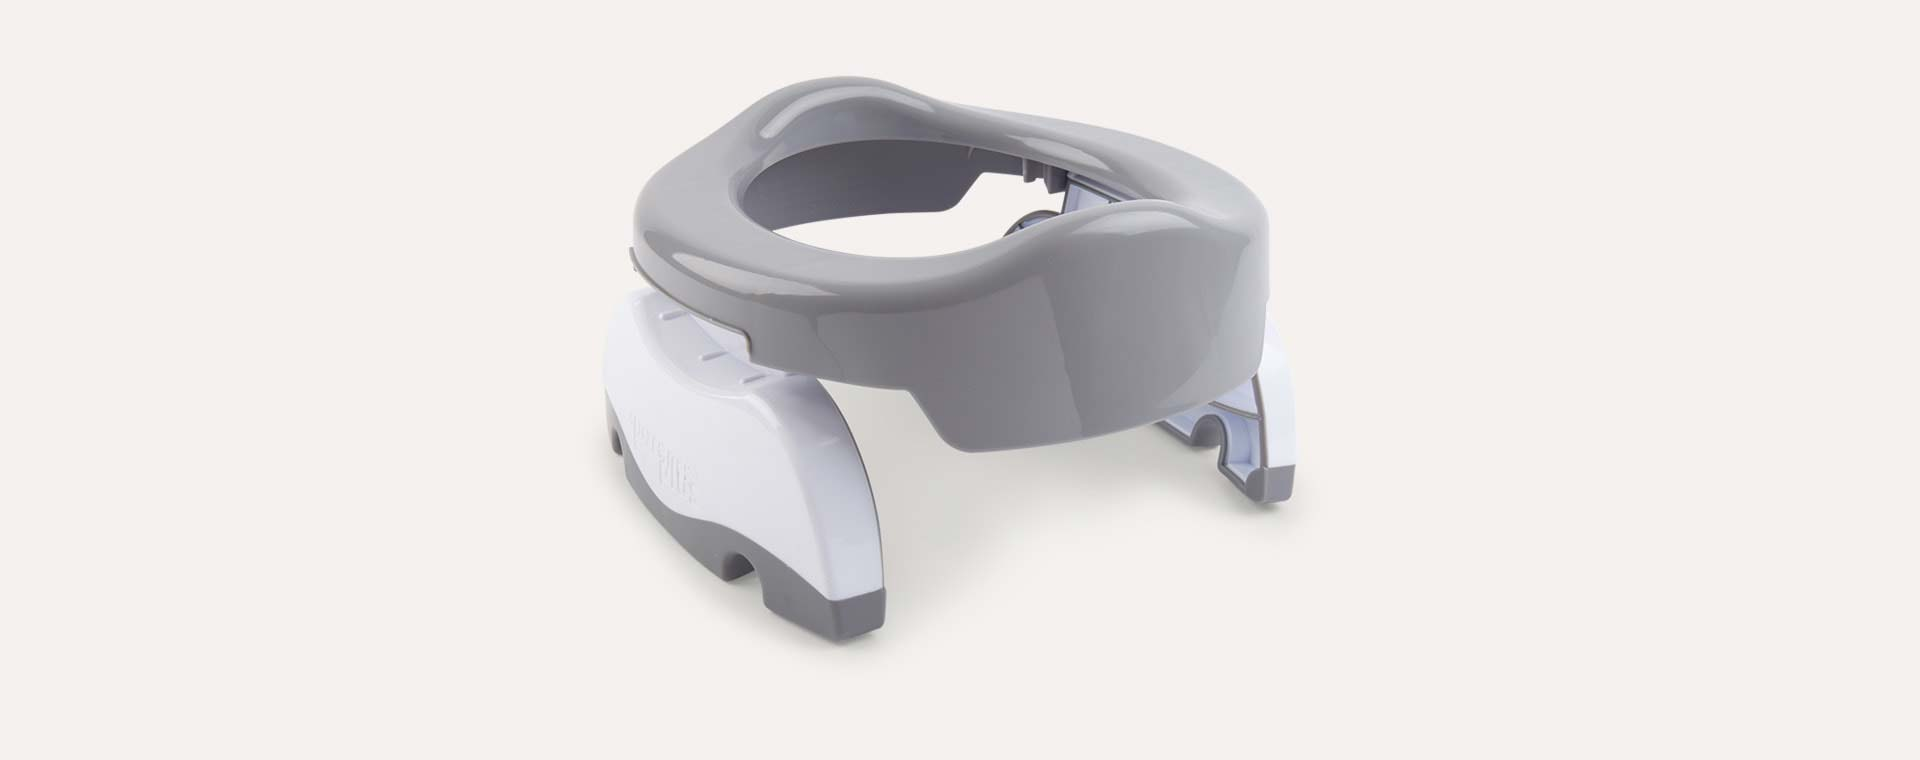 Grey Potette Potette Plus Travel Potty